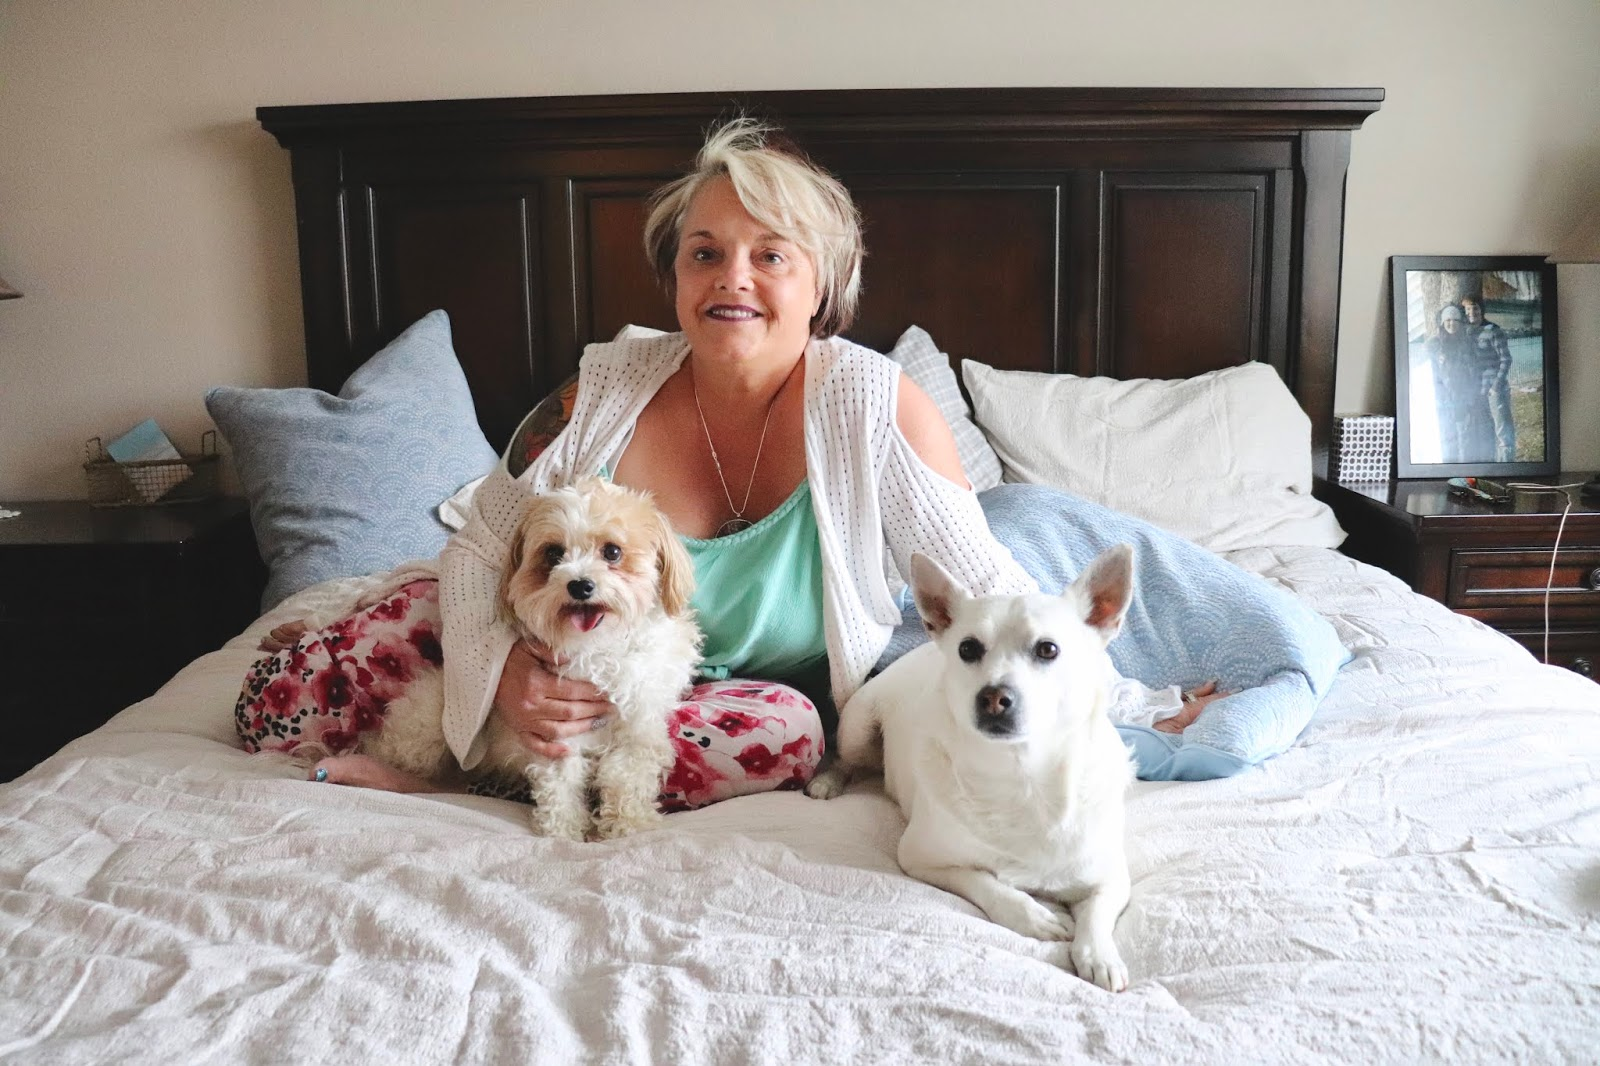 Chicago Plus Size Petite Fashion Blogger, YouTuber, and model Natalie Craig, of Natalie in the City, reviews Big Fig, the mattress made for a bigger figure, and shares how she bought the perfect mothers day gift!